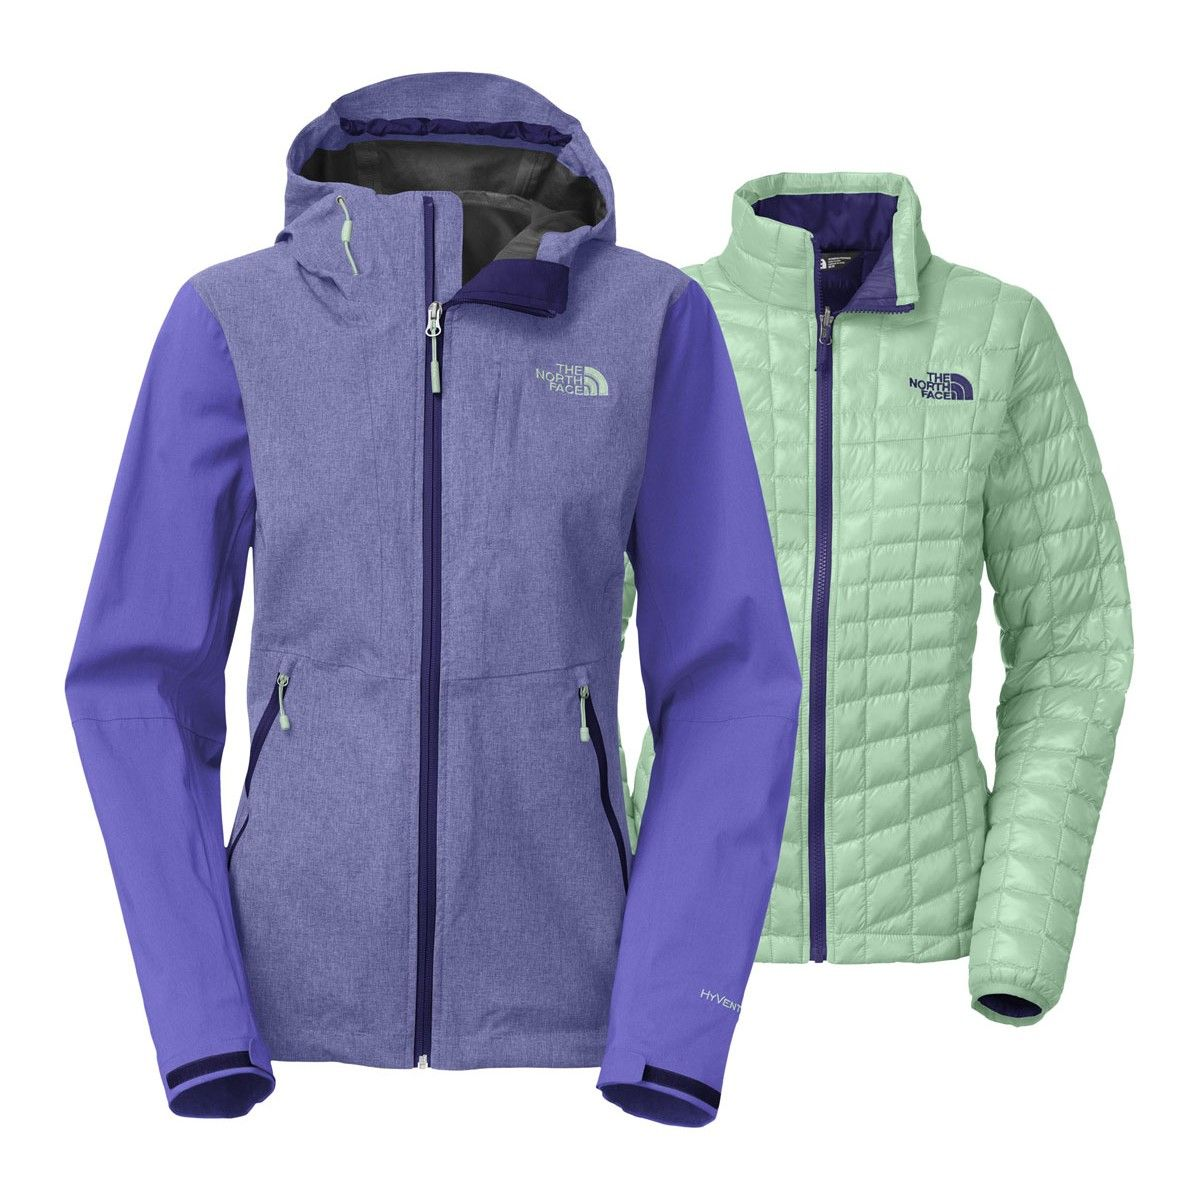 The North Face Women S Thermoball Triclimate Jacket North Face Thermoball Jacket Triclimate Jacket Jackets For Women [ 1200 x 1200 Pixel ]